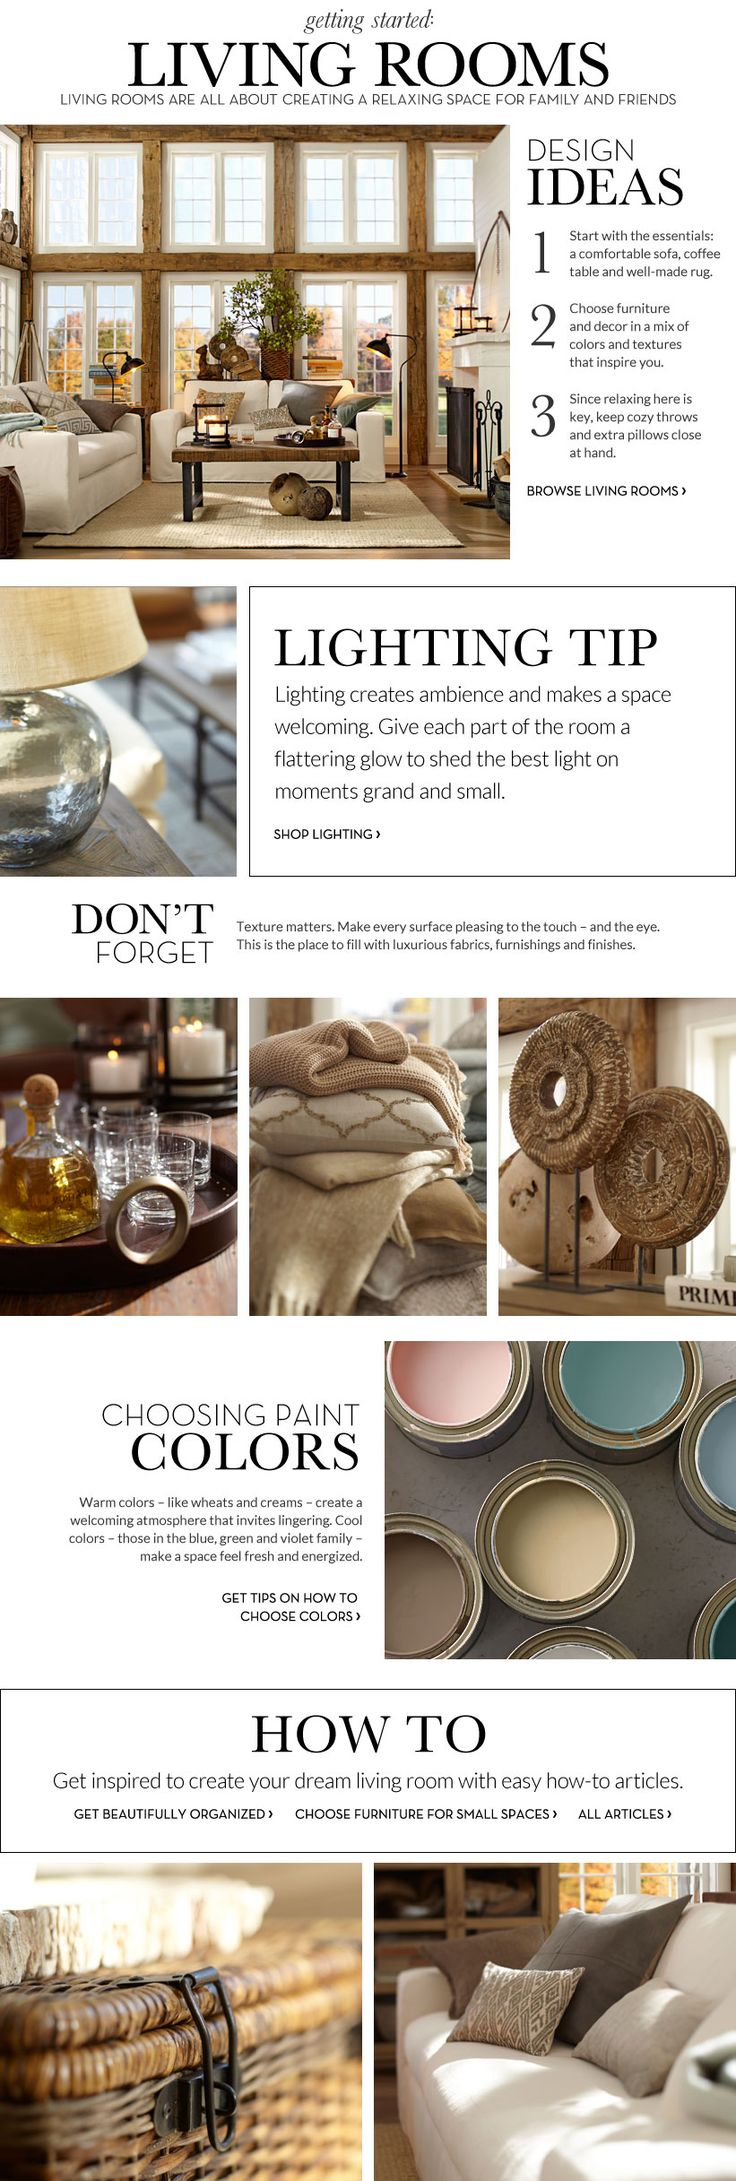 Pottery Barn Living Room Decorating 101 Best Images About Pottery Barn Inspiration On Pinterest